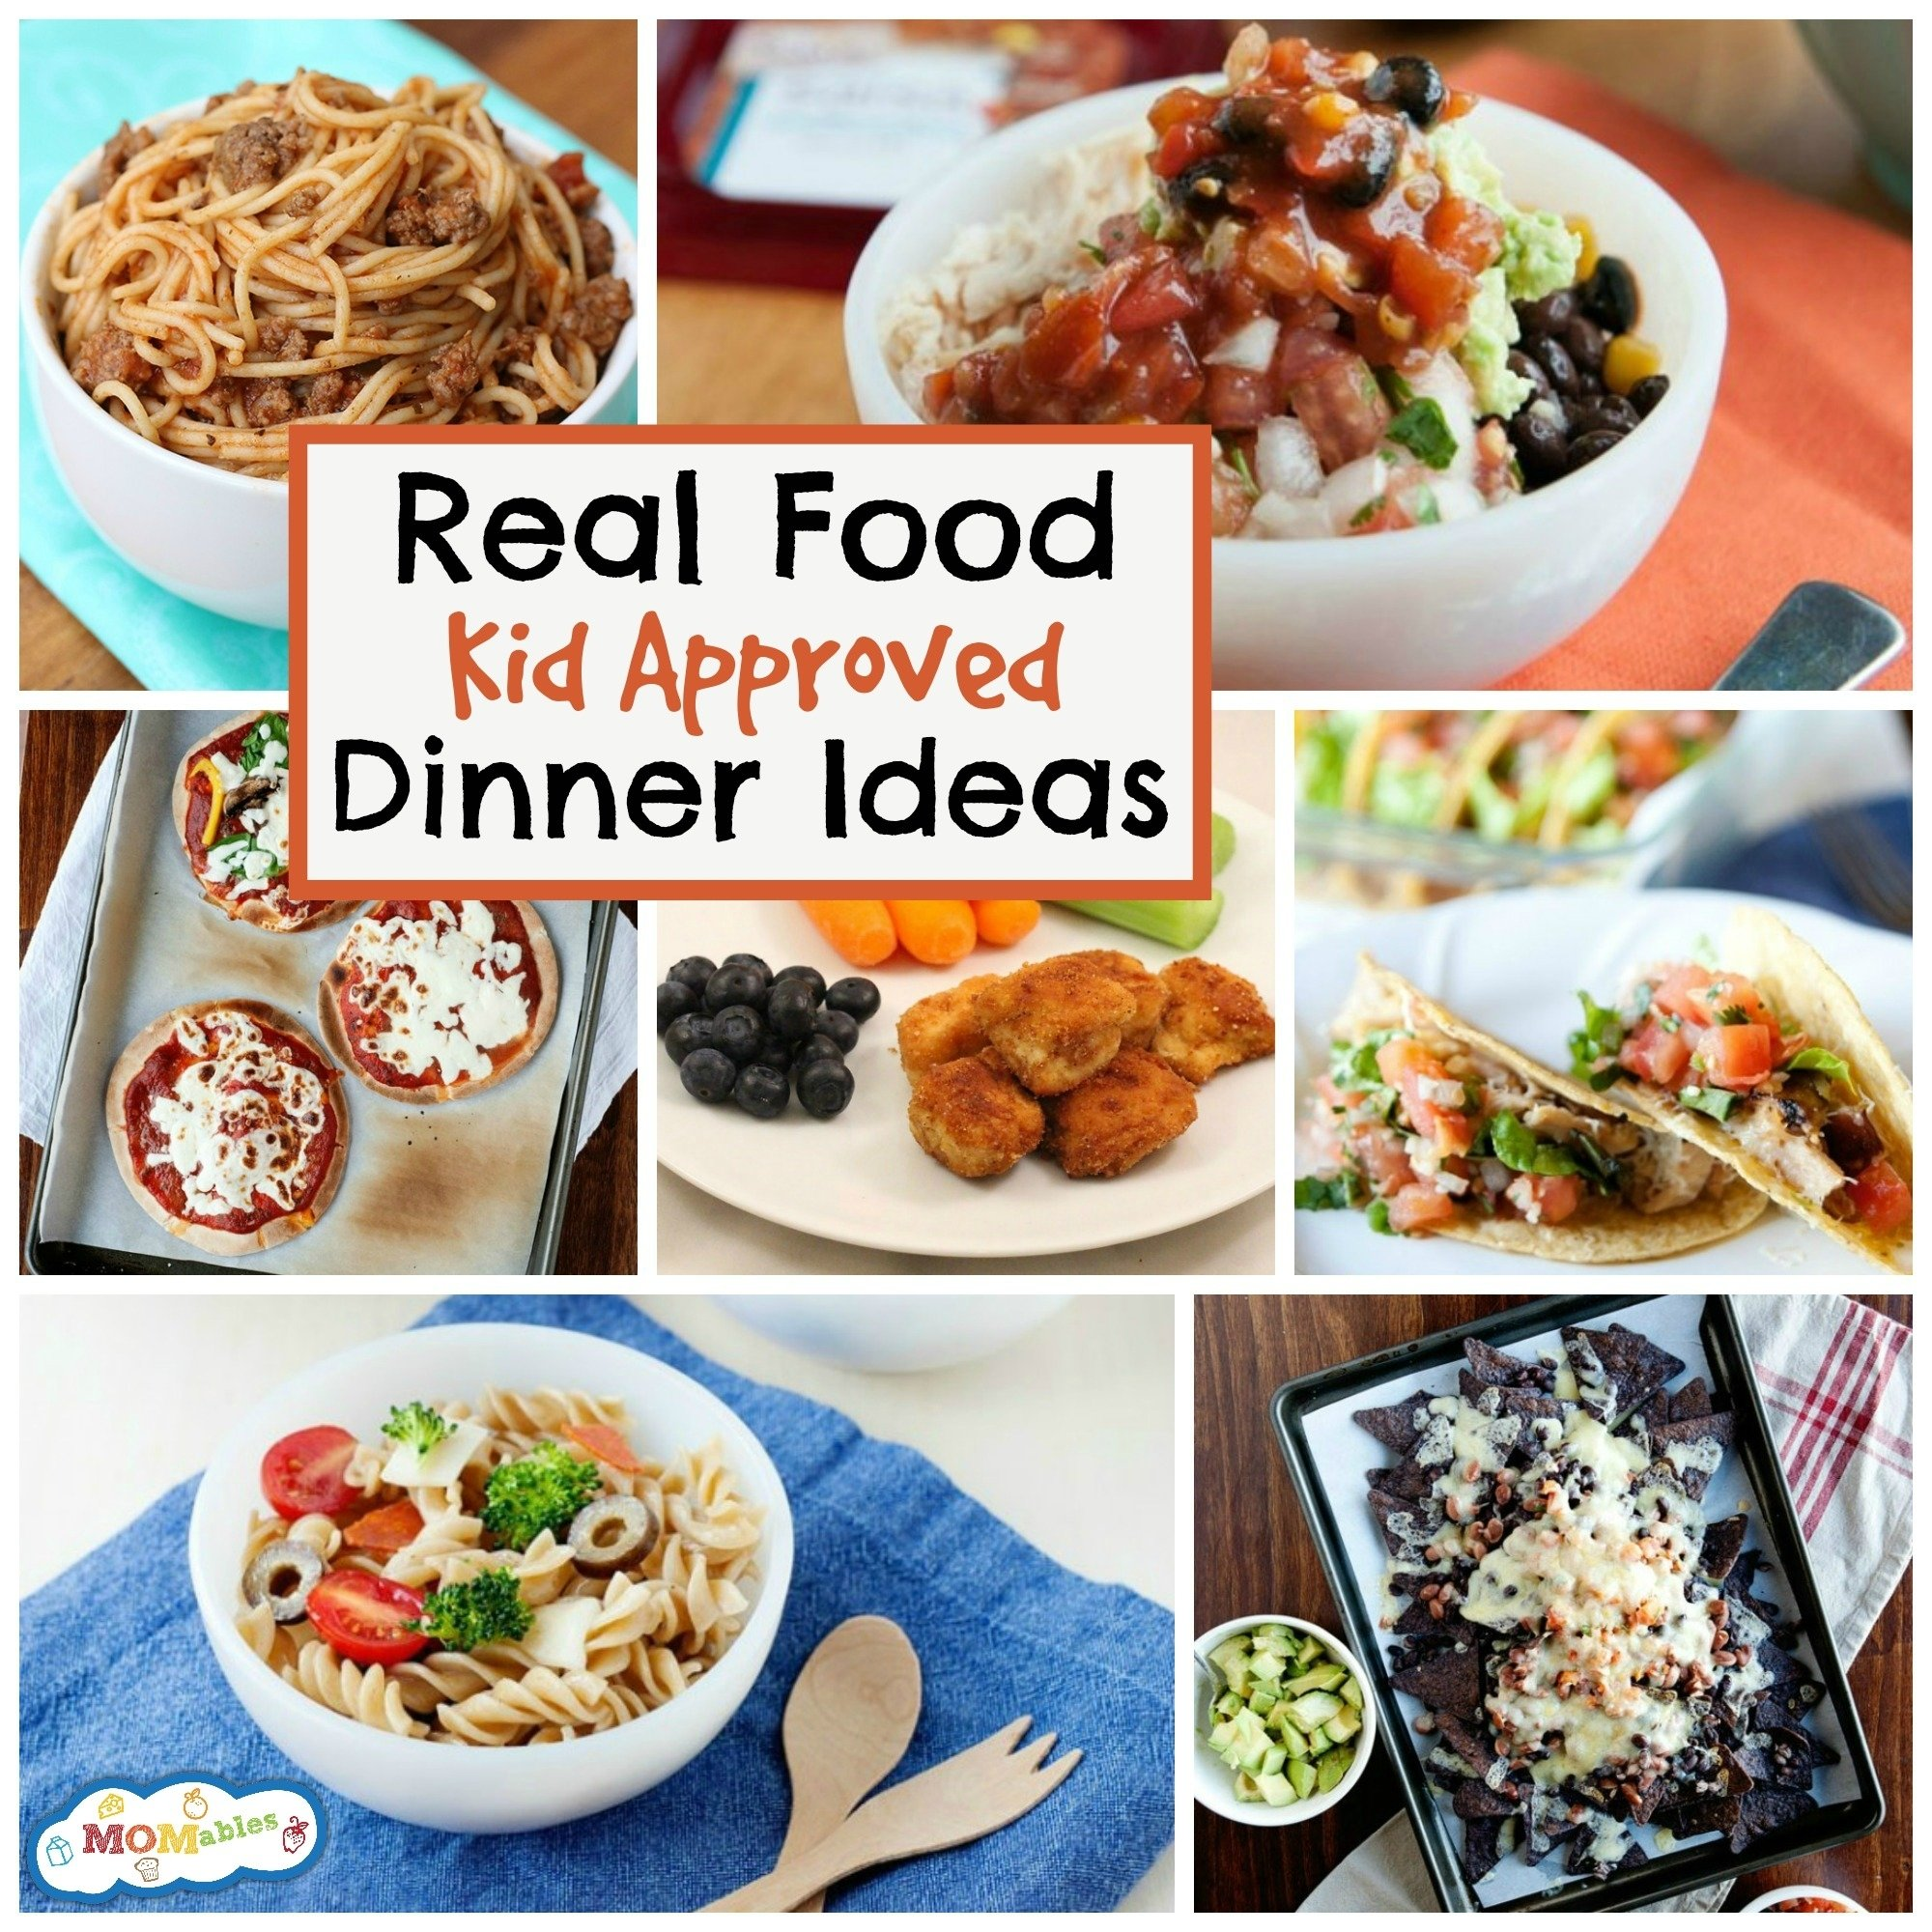 10 Stylish Good Dinner Ideas For Kids 10 real food kid approved dinner ideas 1 2020